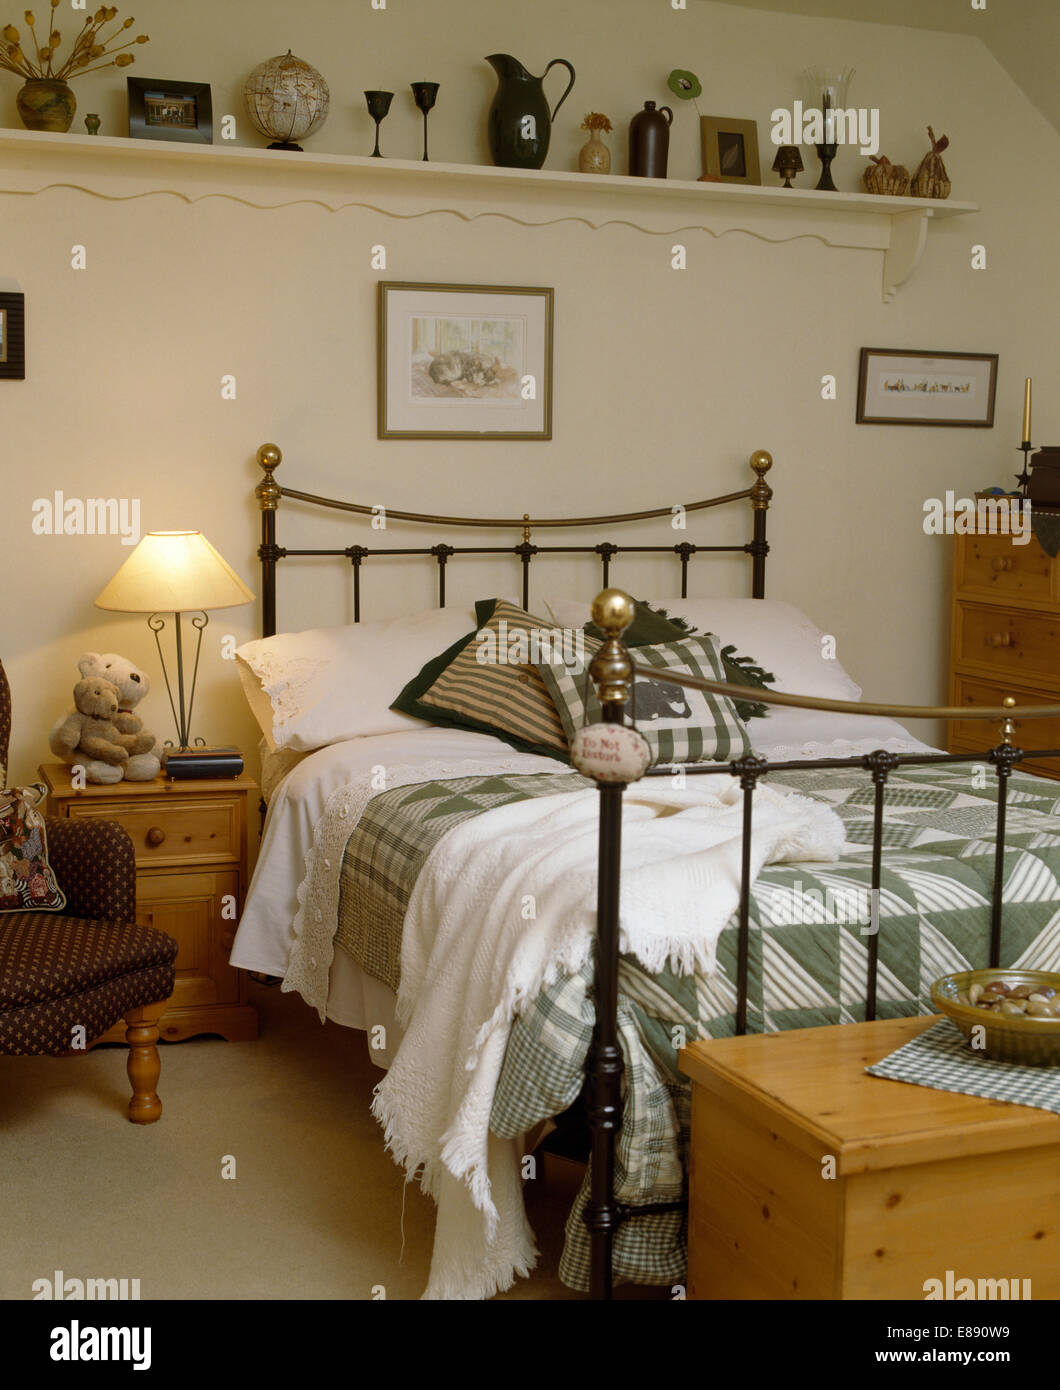 Collection of artefacts on white shelf above antique brass bed with green+white quilt in country bedroom - Stock Image